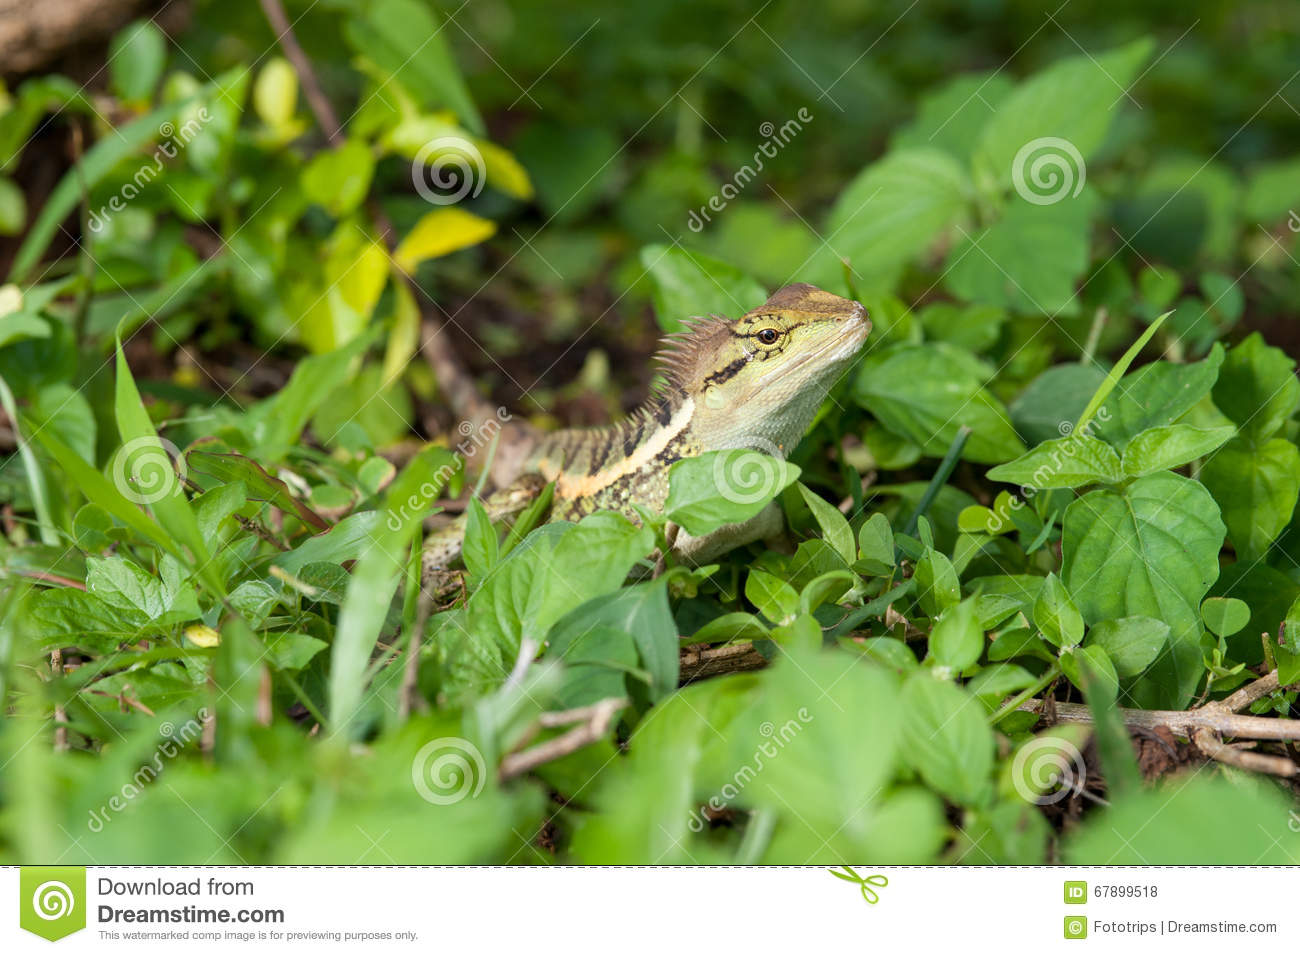 Forest Crested Lizard